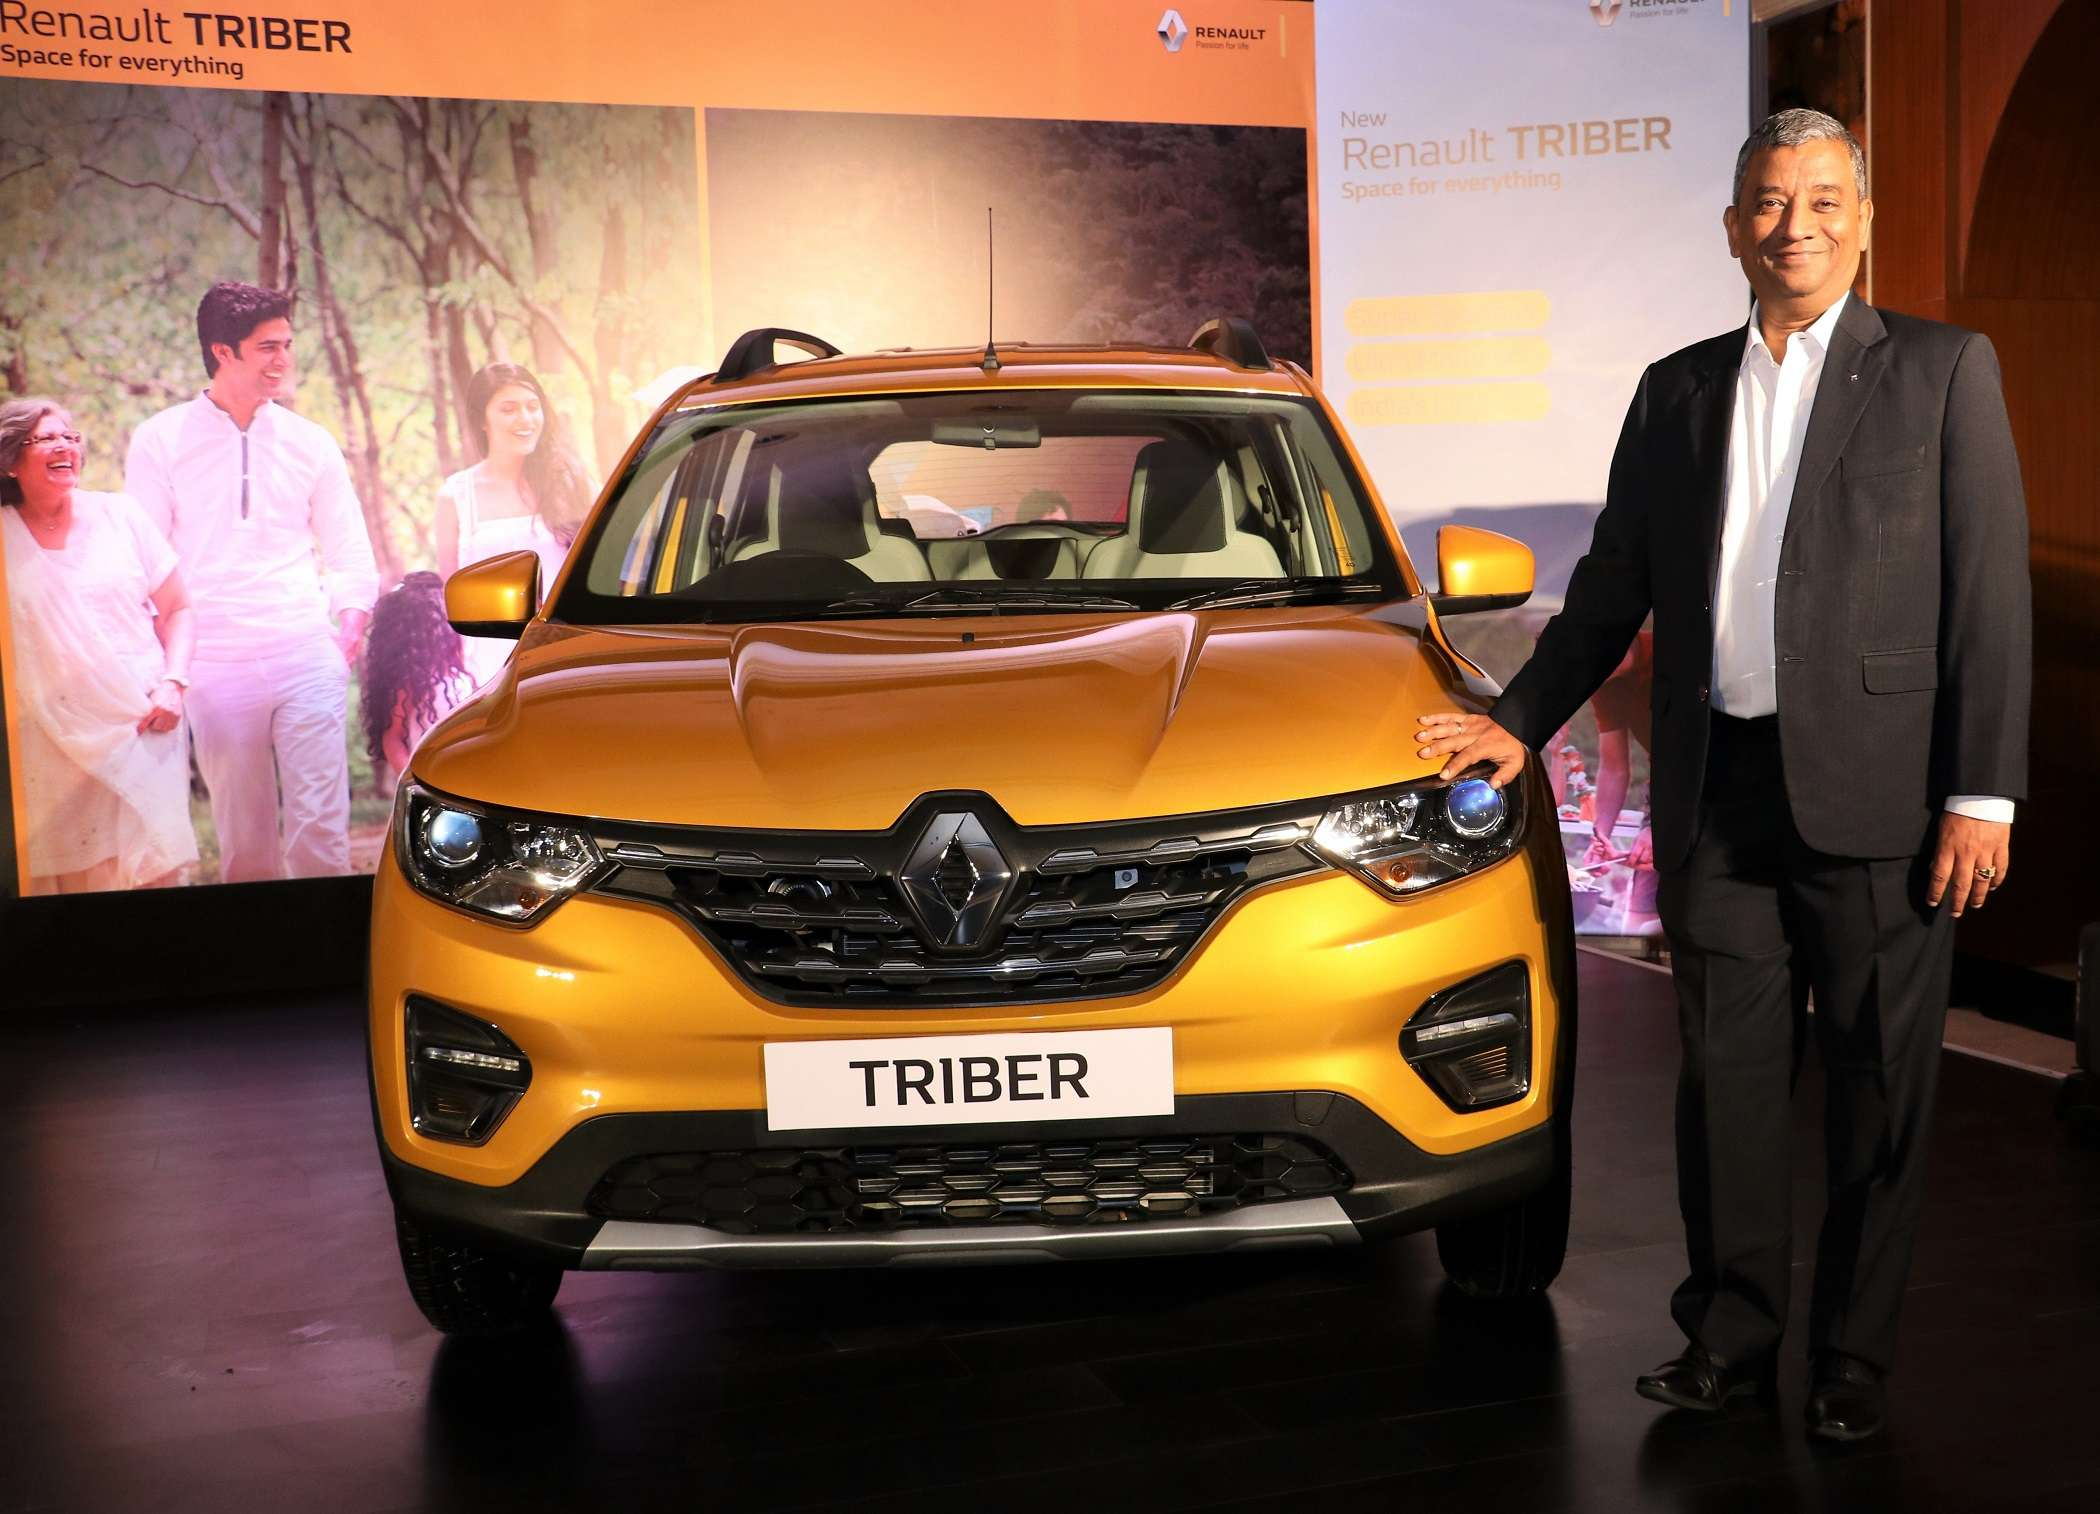 Renault Triber Renault India Delivers 10 000 Triber Mpv In Two Months Auto News Et Auto